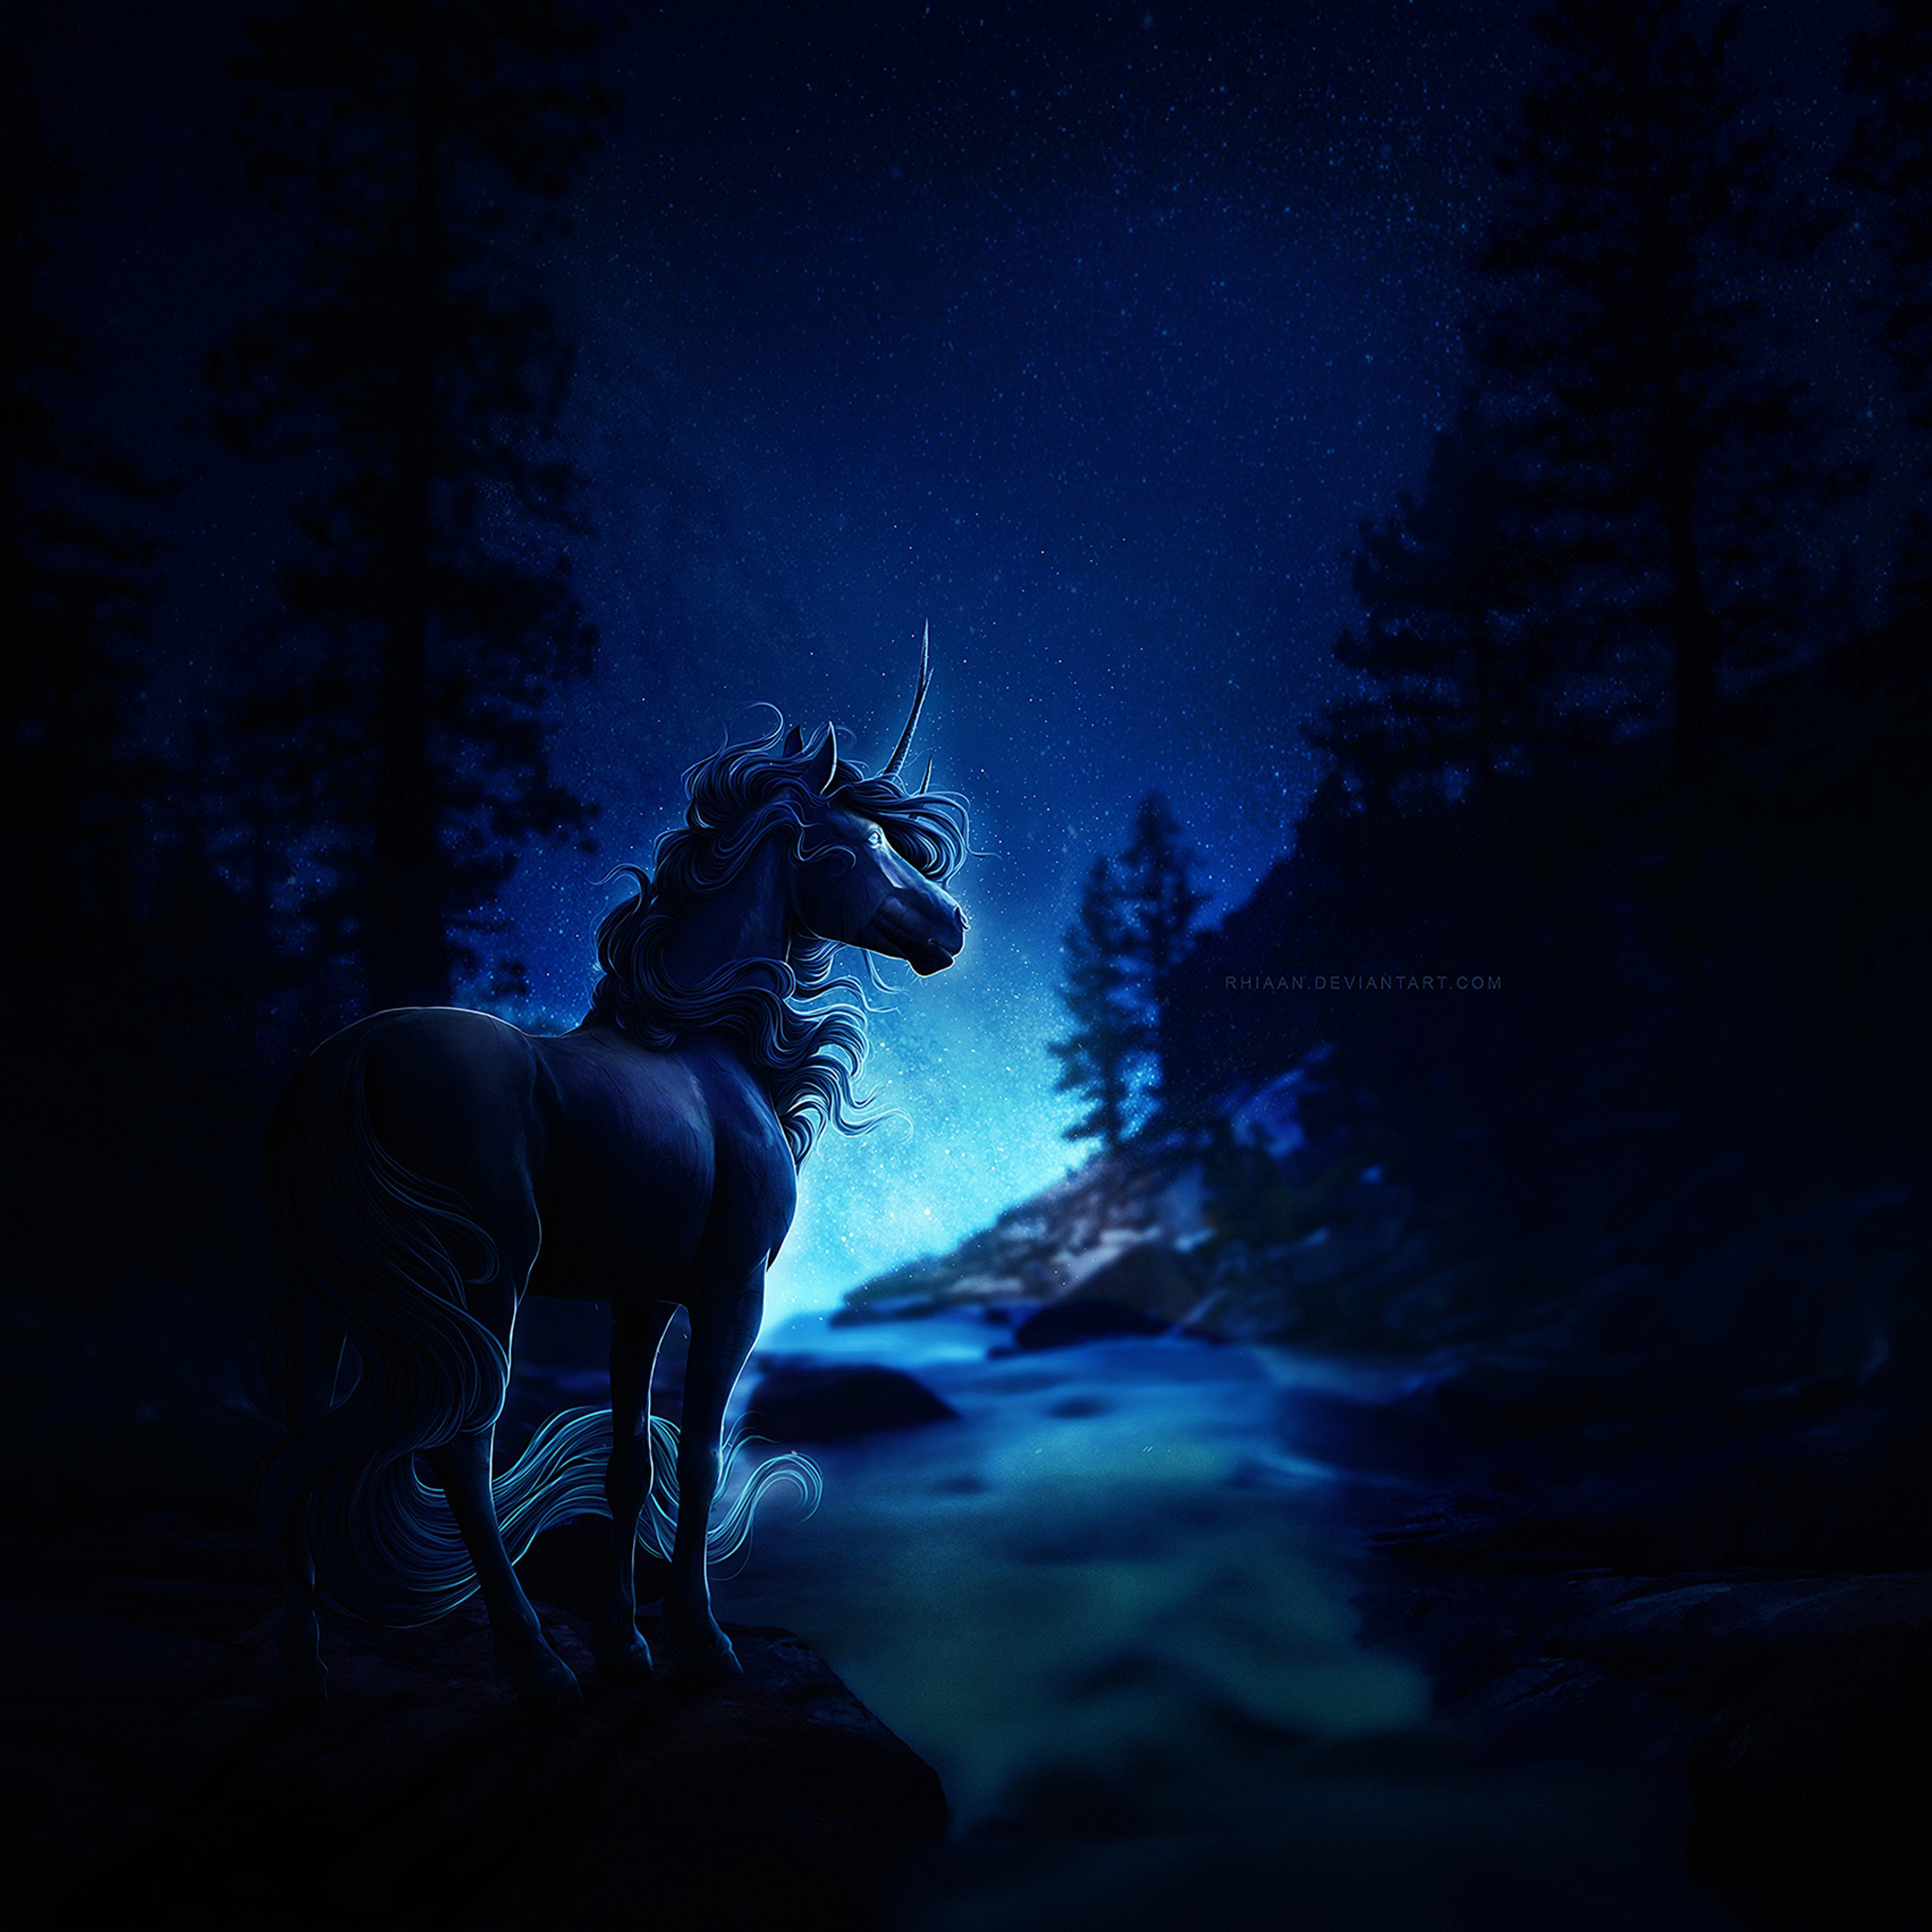 2048x2048 Horse Blue Night Ipad Air Hd 4k Wallpapers Images Backgrounds Photos And Pictures